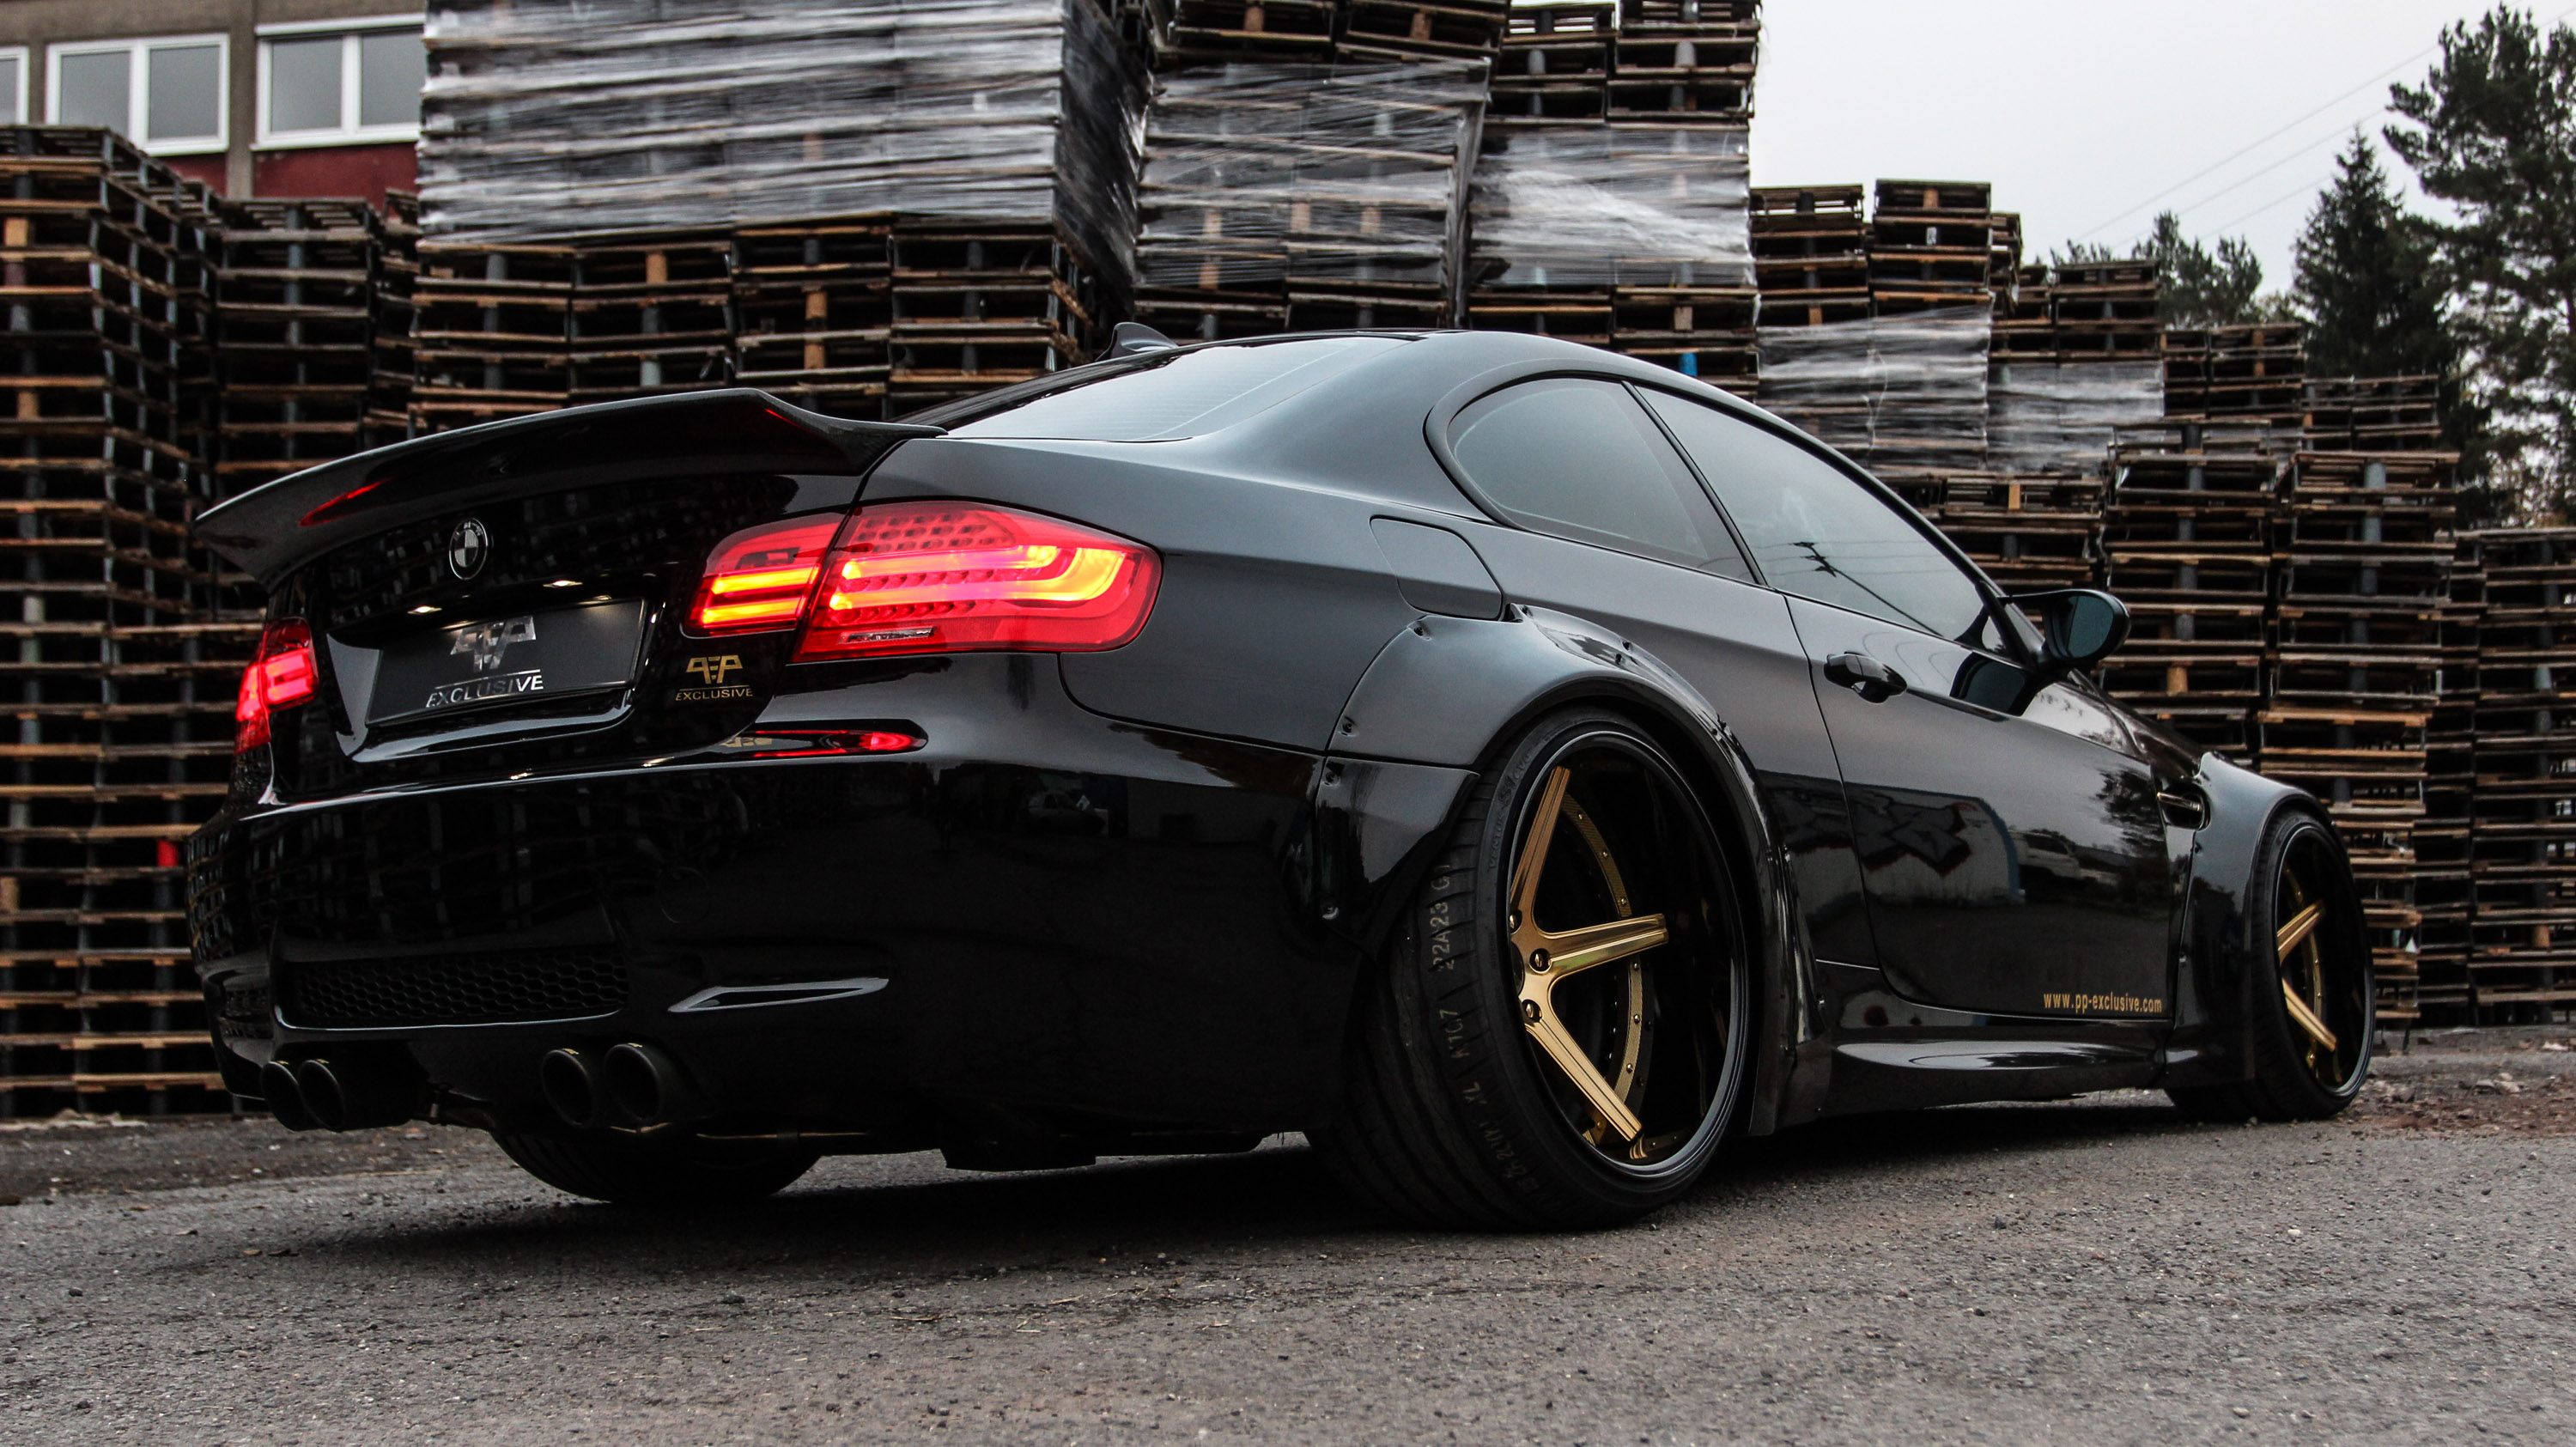 Liberty Walk Bmw M3 E92 Widebody Kit